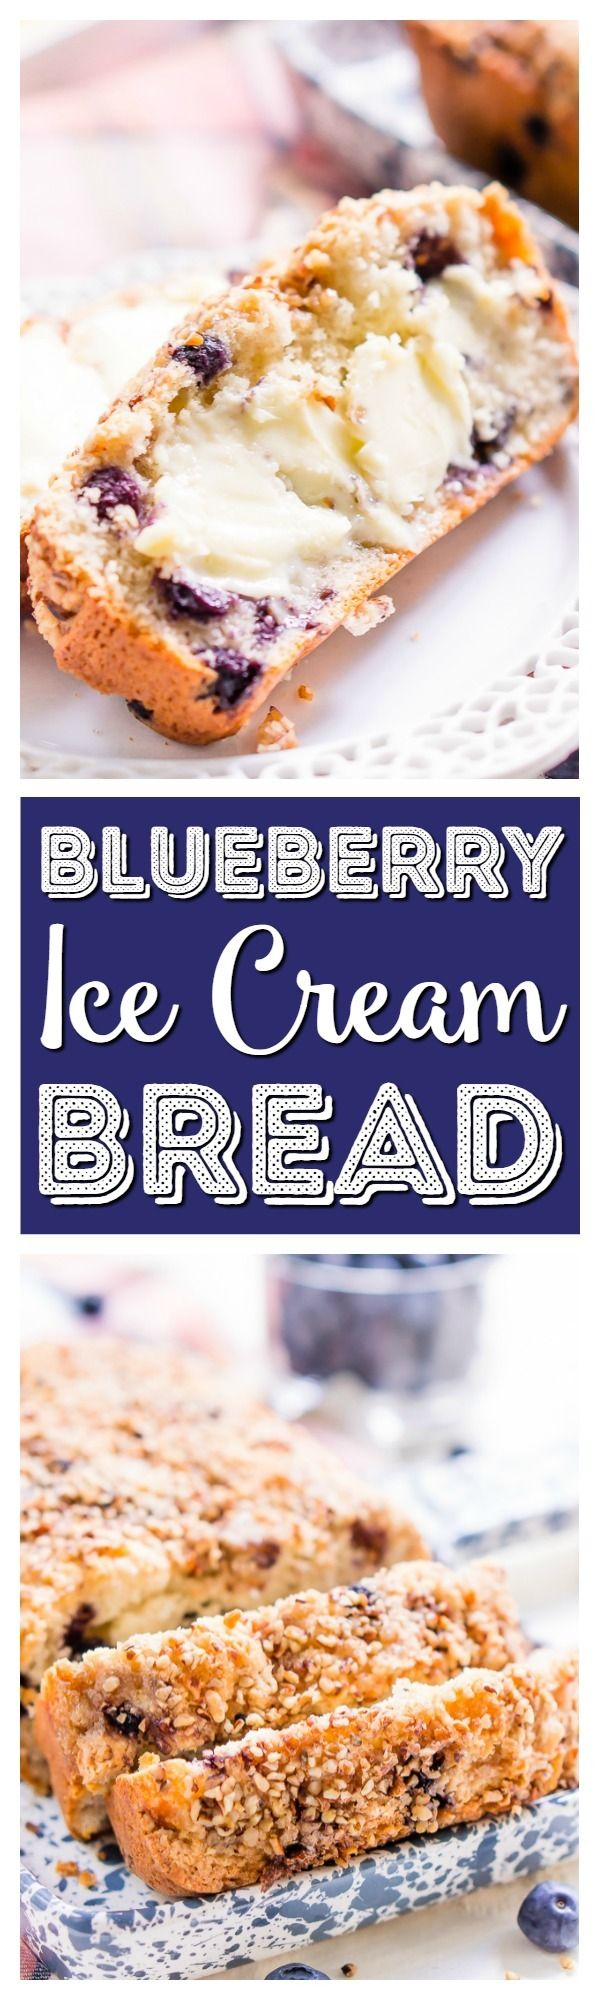 Blueberry Ice Cream Bread is a delicious and easy sweet bread recipe made with just six ingredients and ready in less than an hour! via @sugarandsoulco (Icecream Cake Roll)